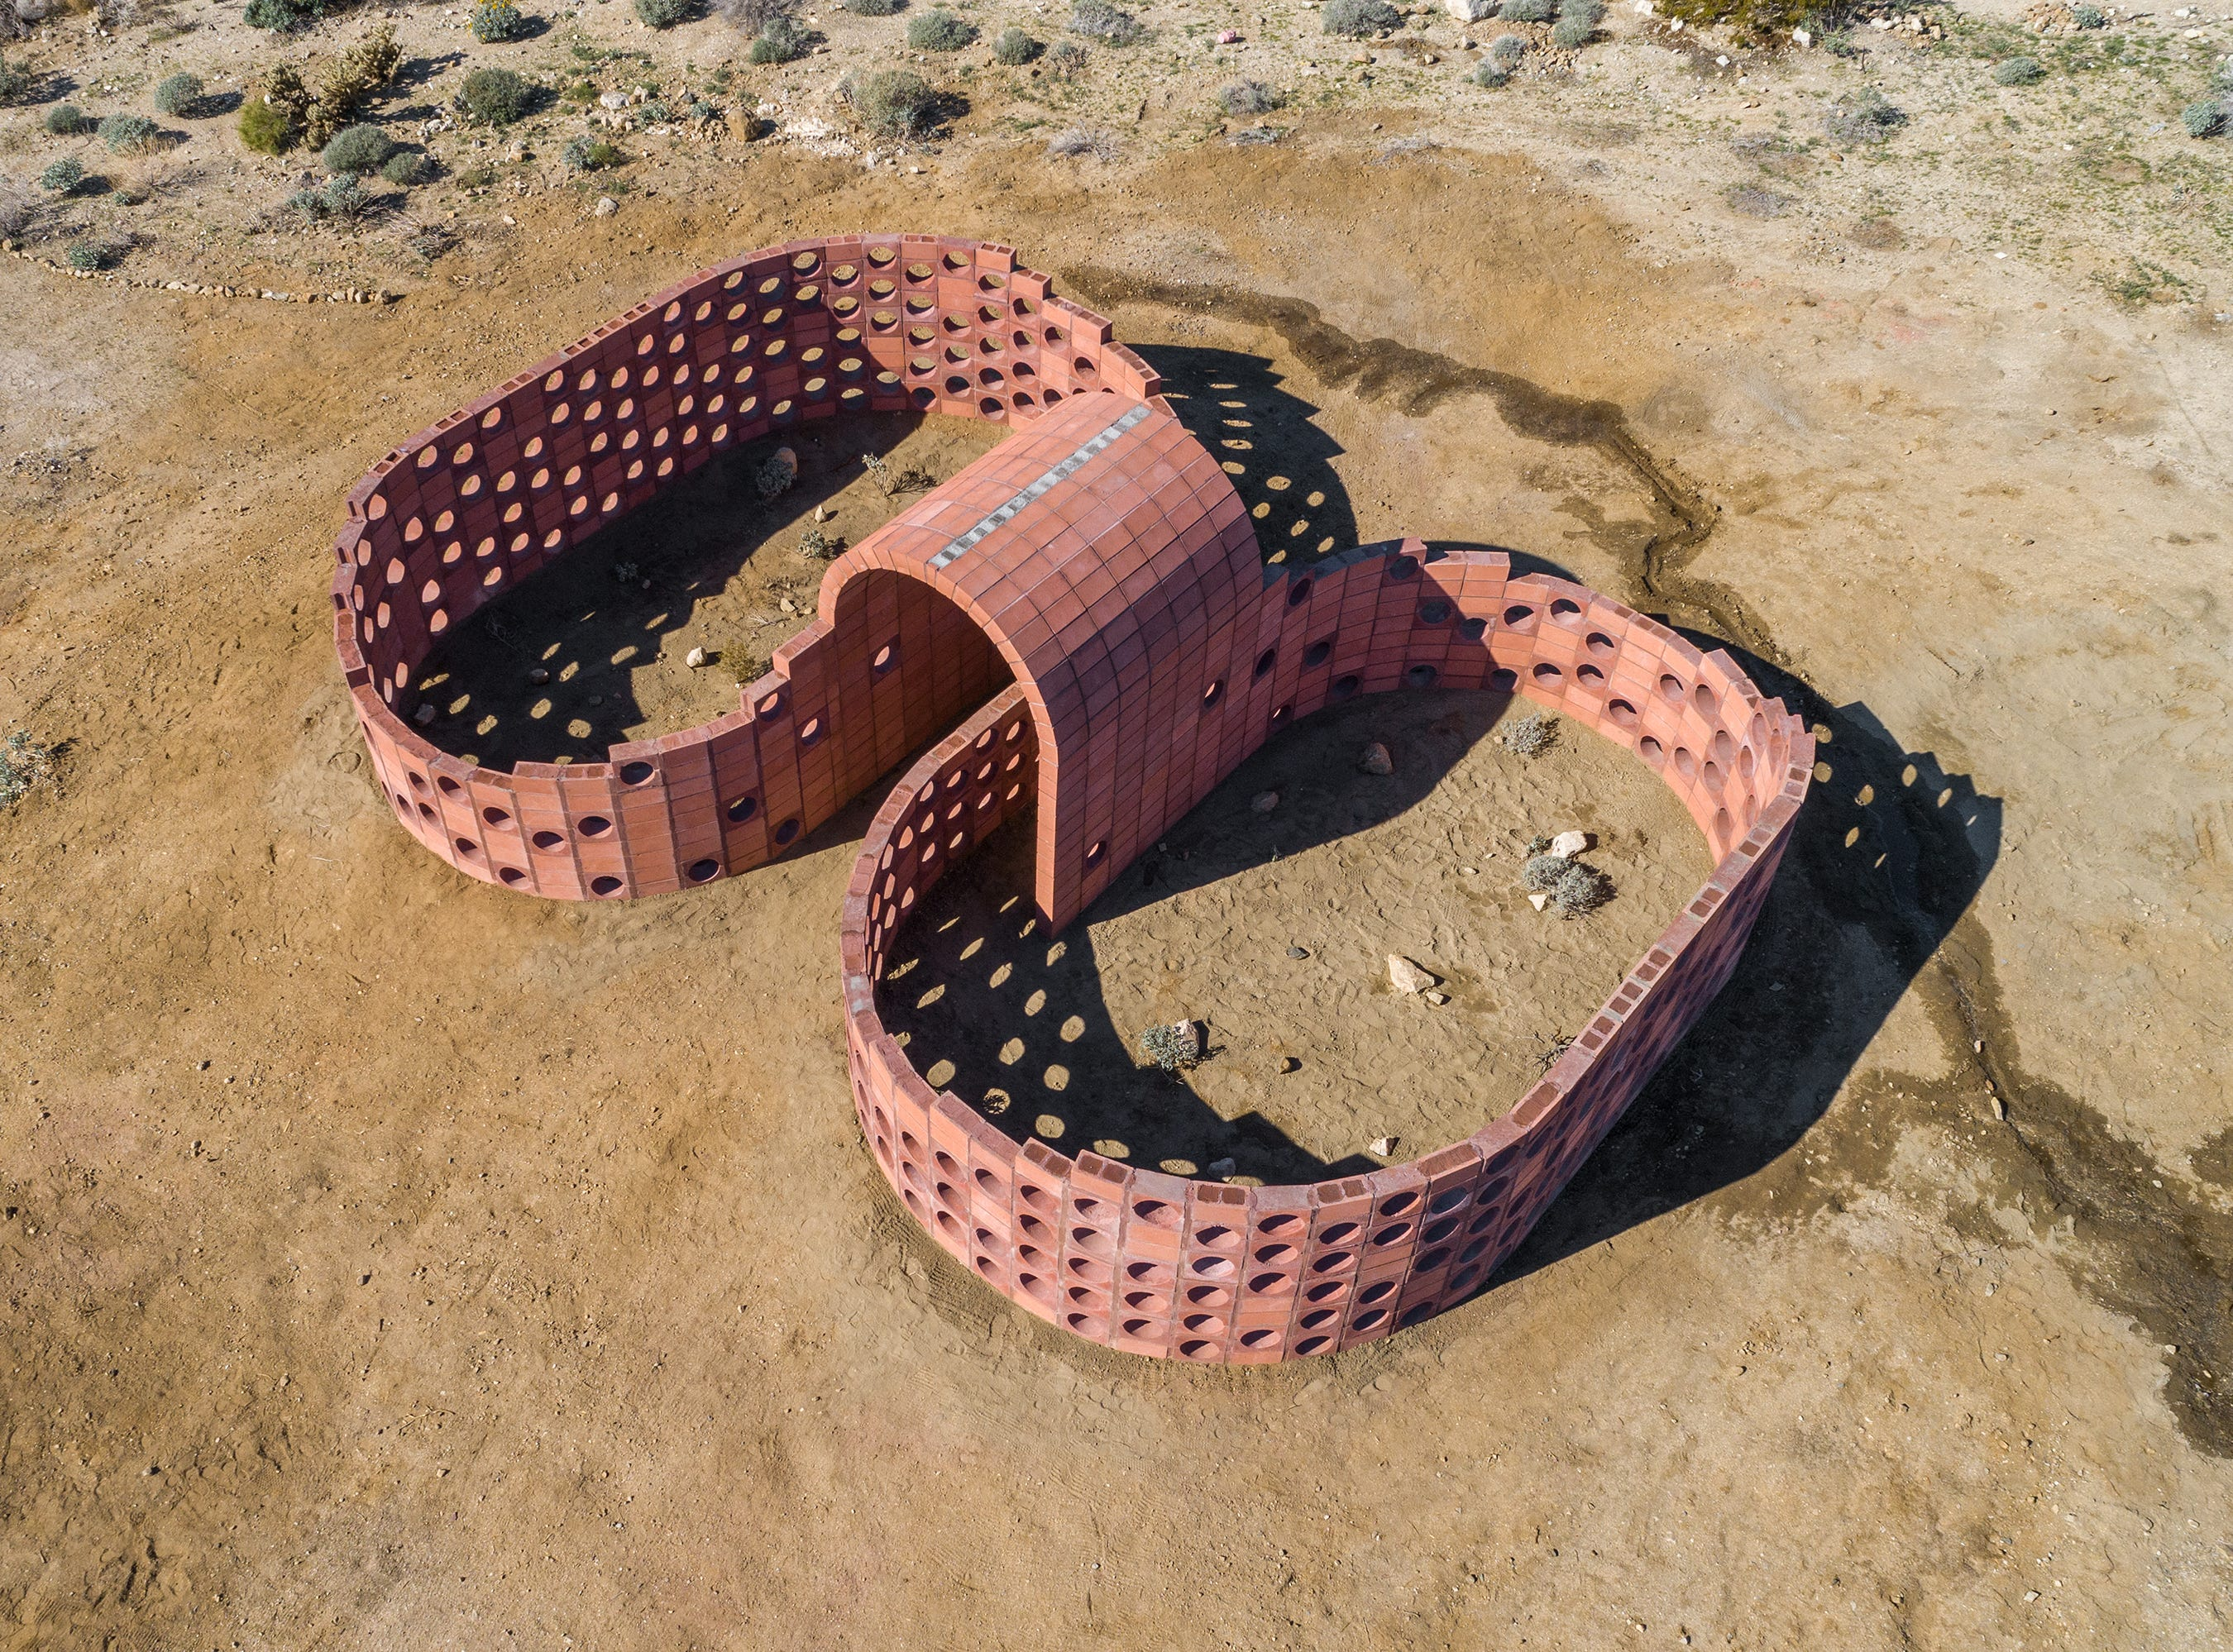 """""""Going Nowhere Pavilion #01"""" and """"Executed Variant DHS #1 (Q1, CJ, DC)"""" by Julian Hoeber for Desert X 2019"""